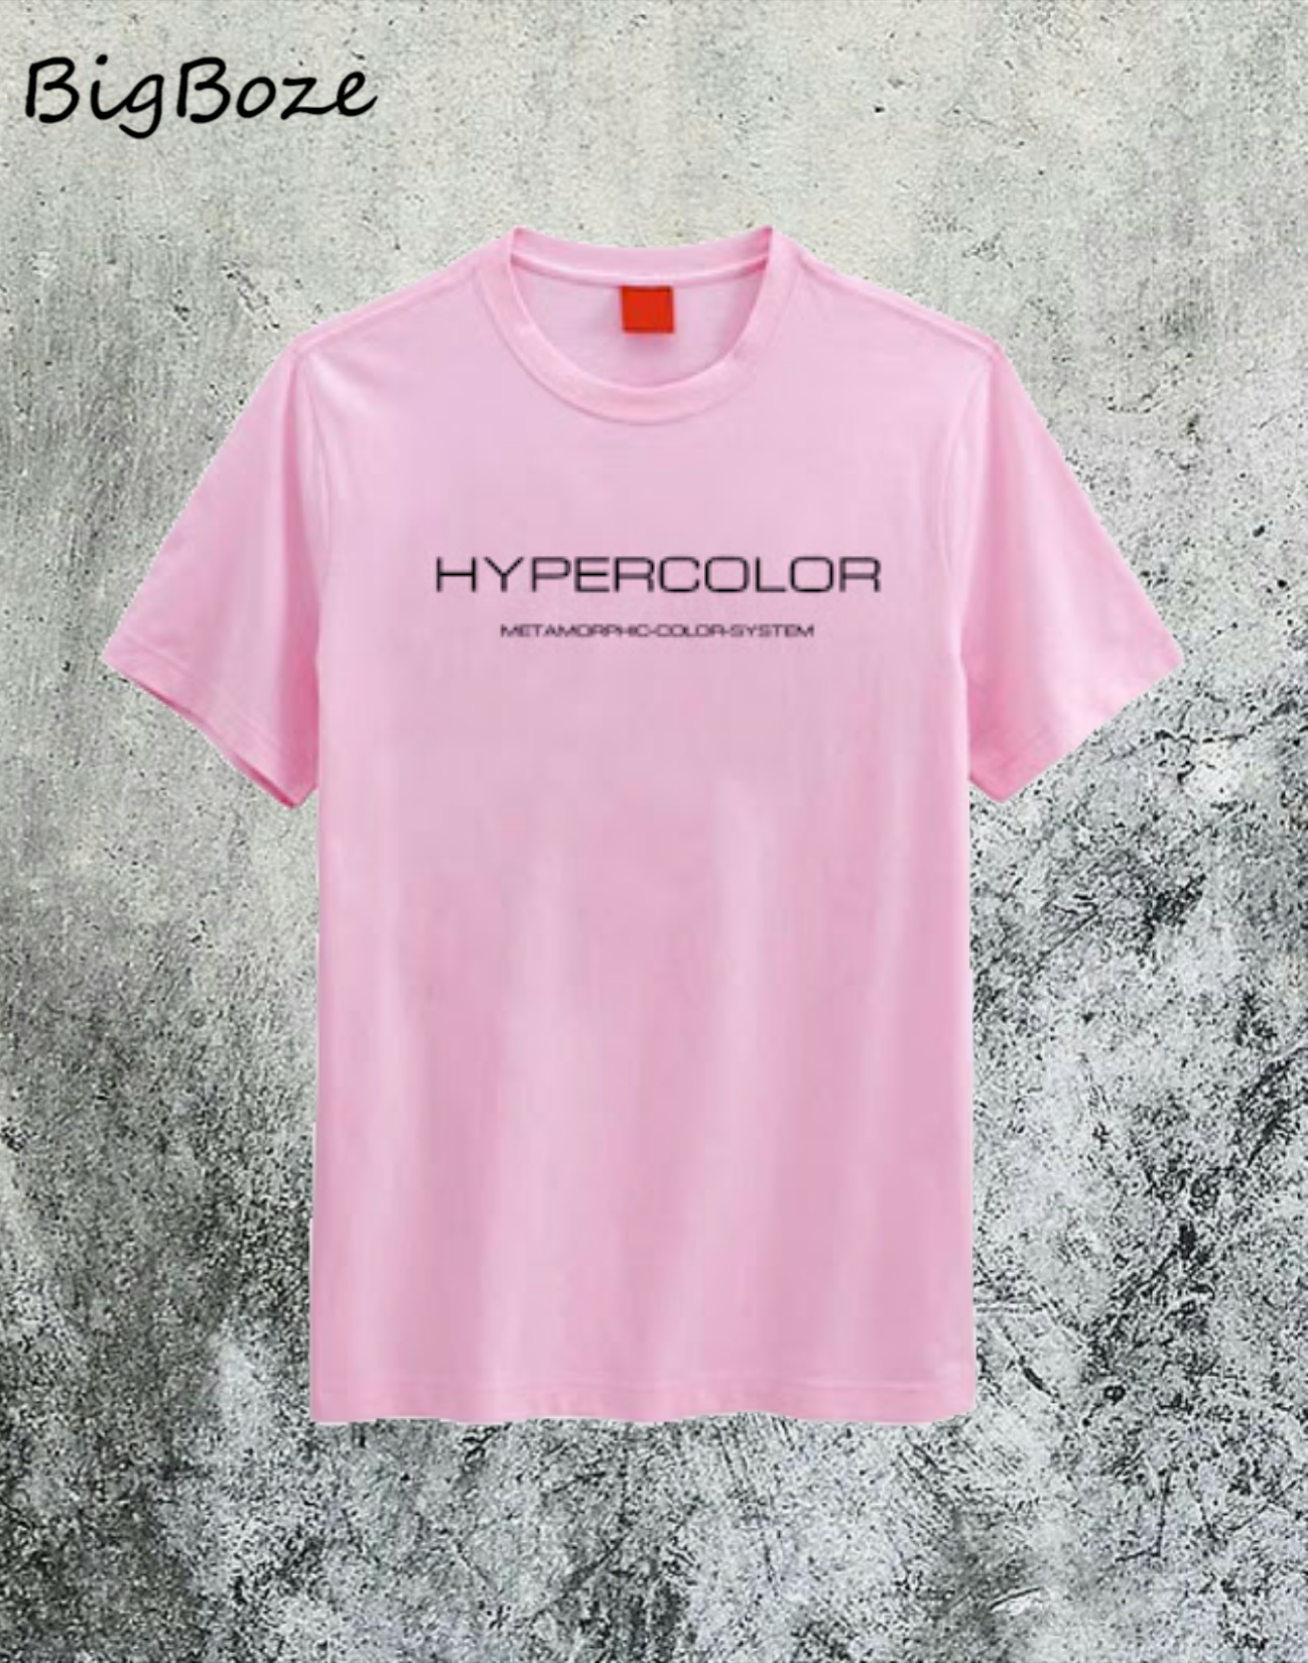 hypercolor t shirts for sale